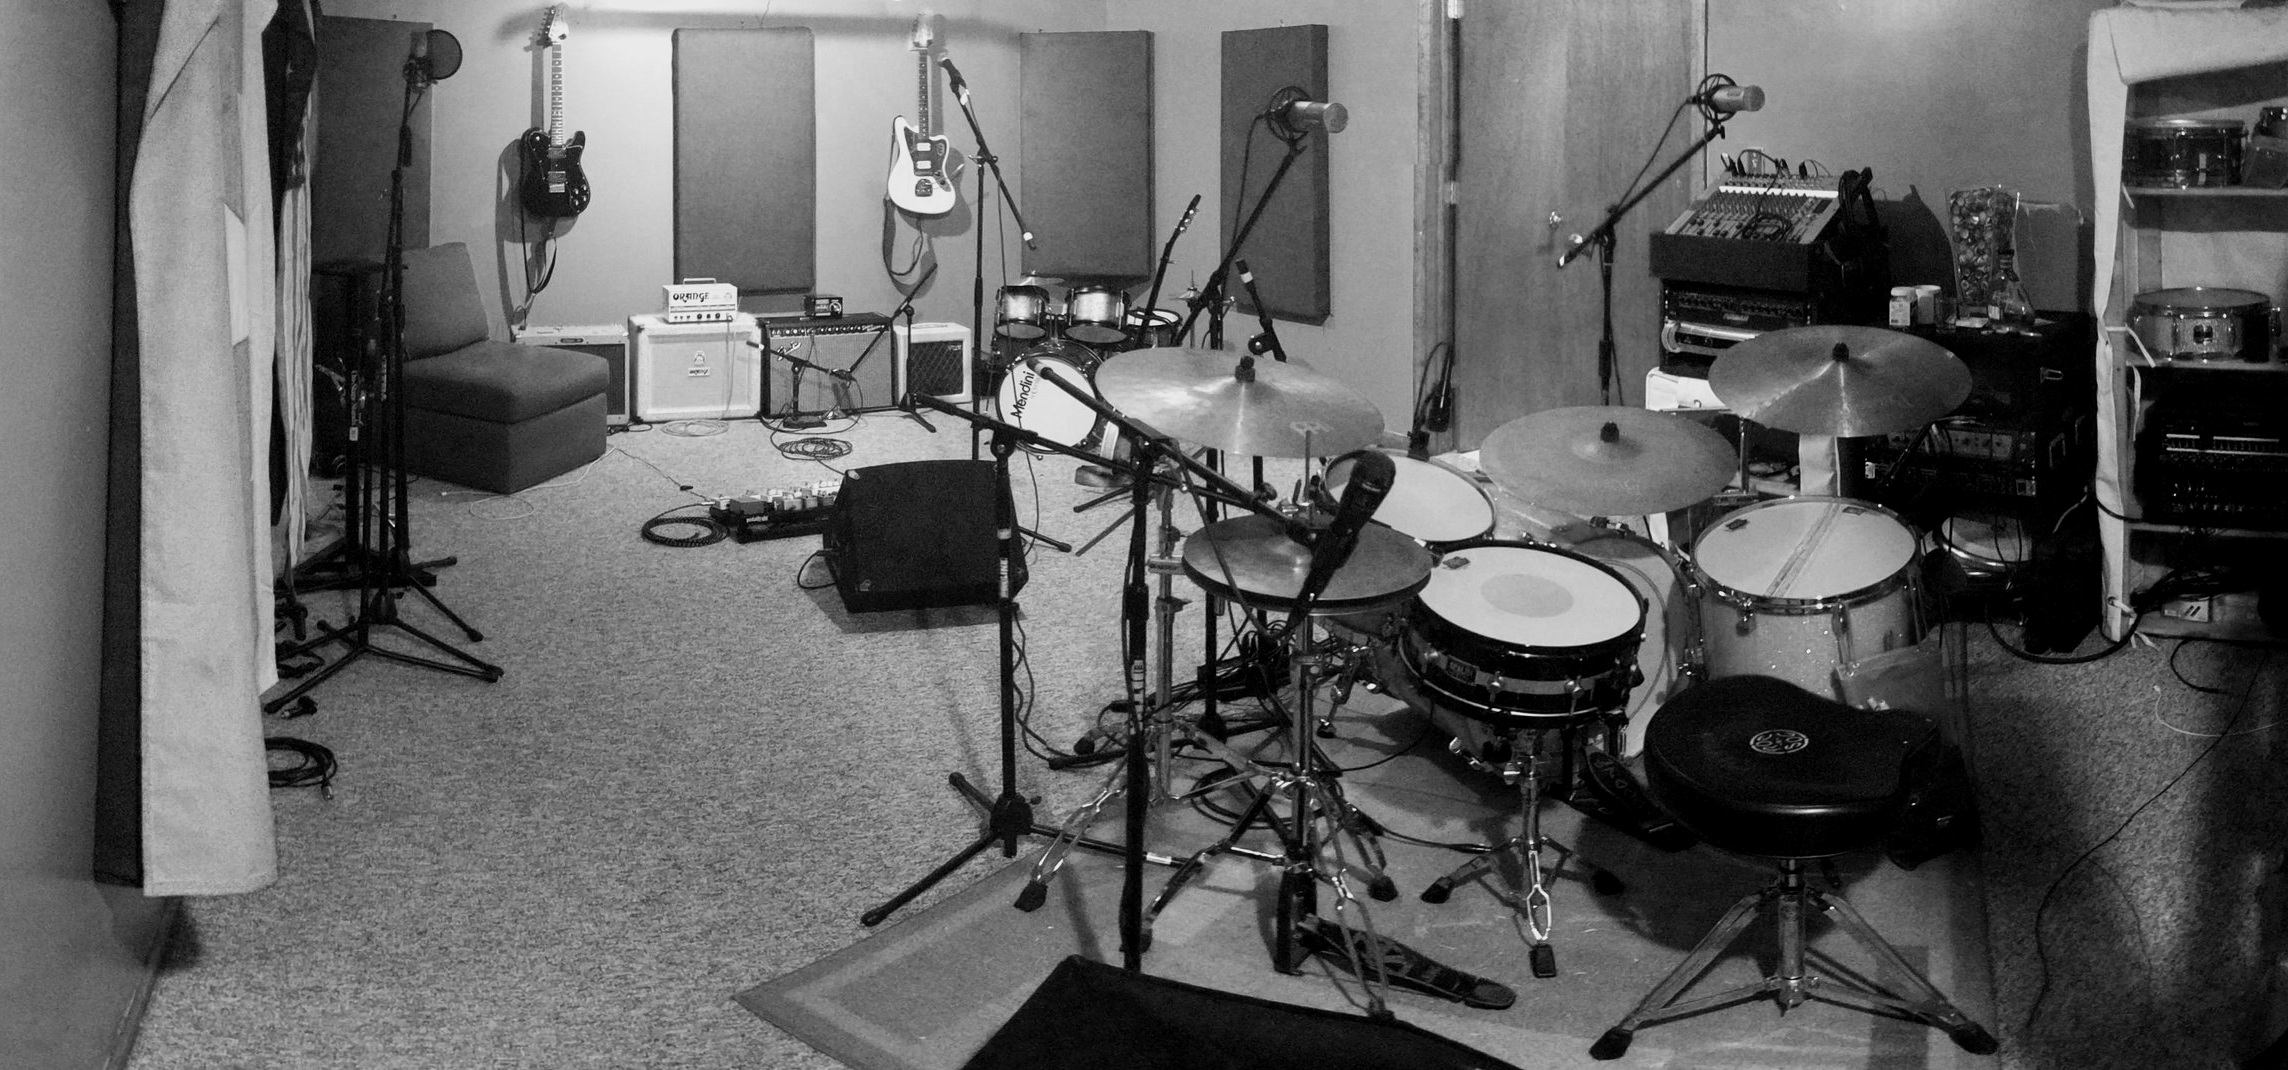 drumroom2.jpg